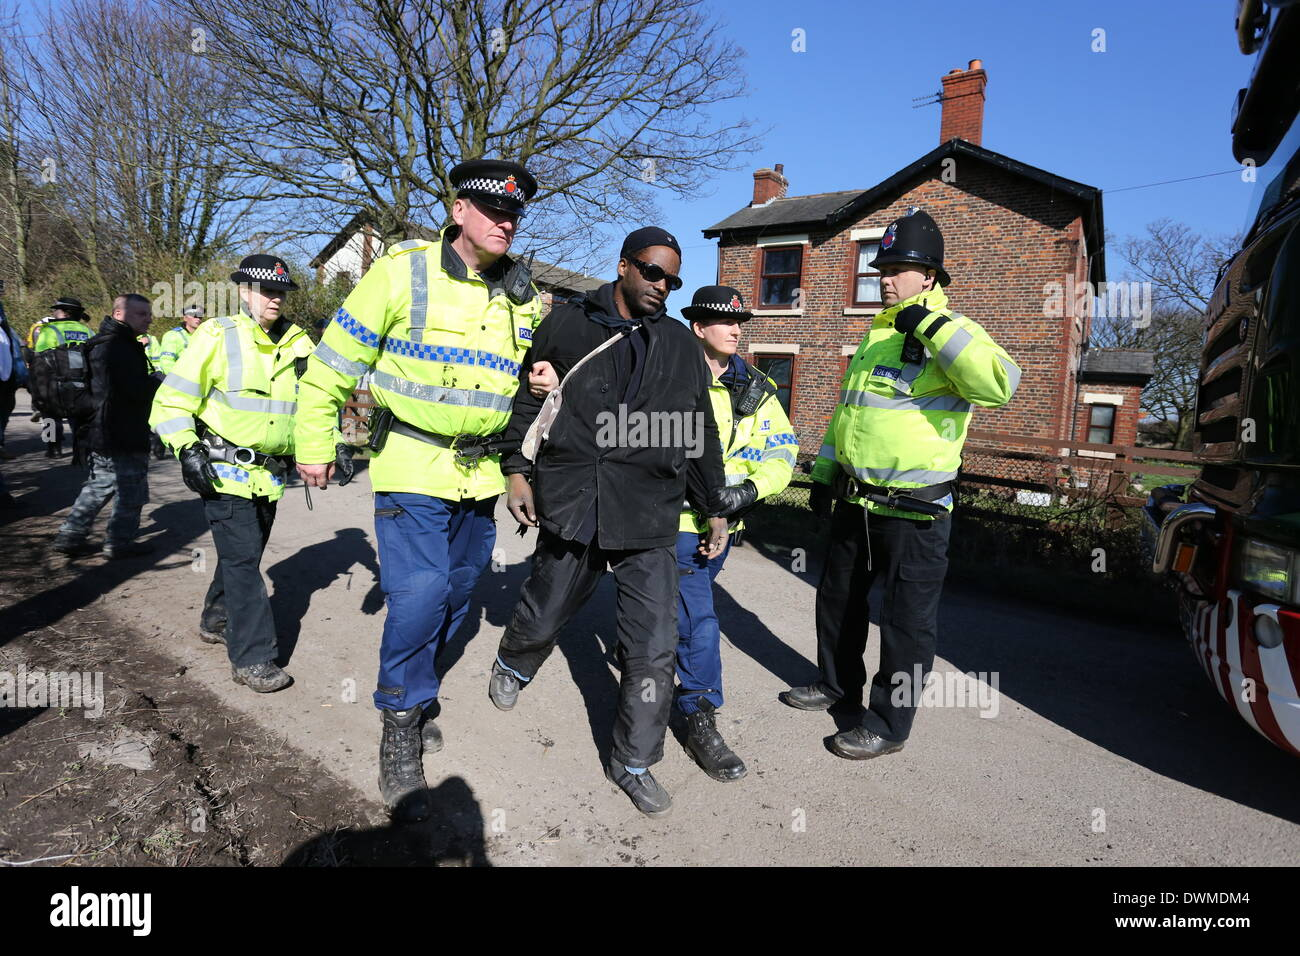 Salford, UK. 11th Mar, 2014. A protester is arrested as lorries arrive. Anti-fracking protesters have been granted a stay of execution by the court of appeal. Anti-fracking protesters were ordered to leave the Barton Moss protest camp after landowners Peel Holdings asked Manchester Civil Justice Centre for possession of the camp. The court order said that protesters must leave the site before 12 noon on Tuesday, 11th March, 2014. Credit:  Christopher Middleton/Alamy Live News - Stock Image